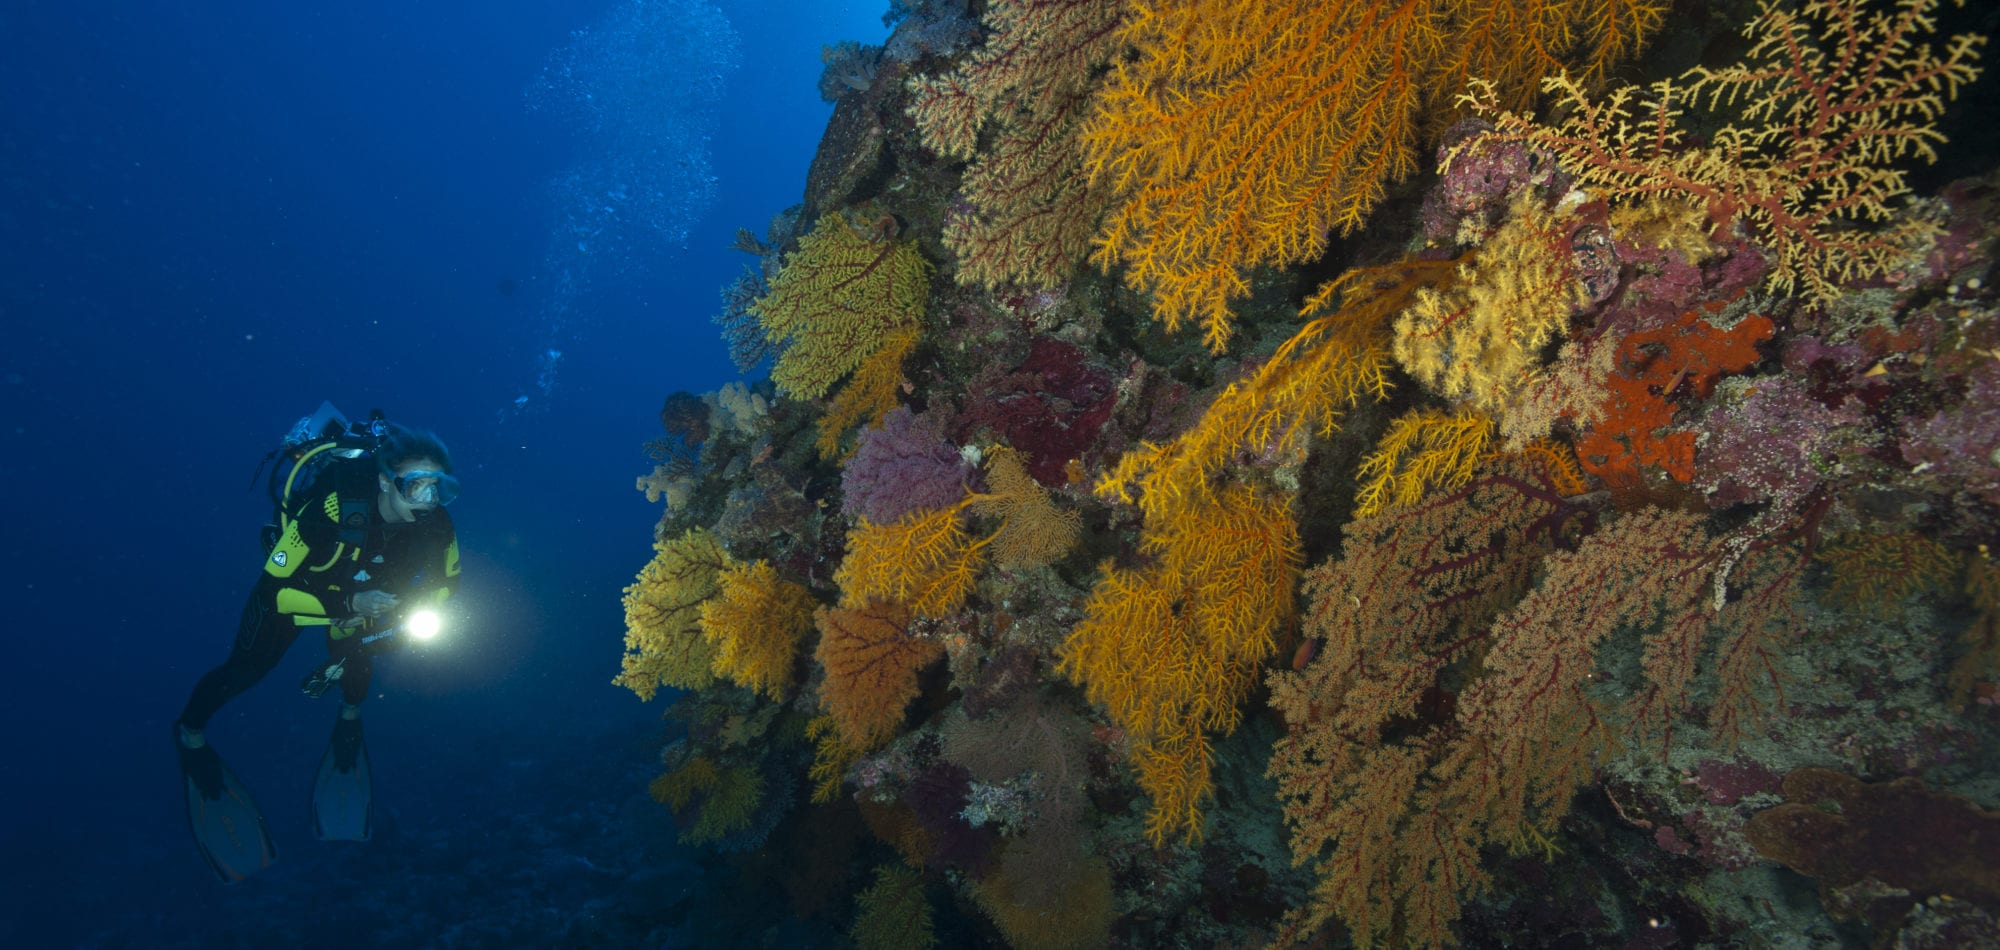 Dive in Australia on the Spirit of Freedom - North Horn dive site